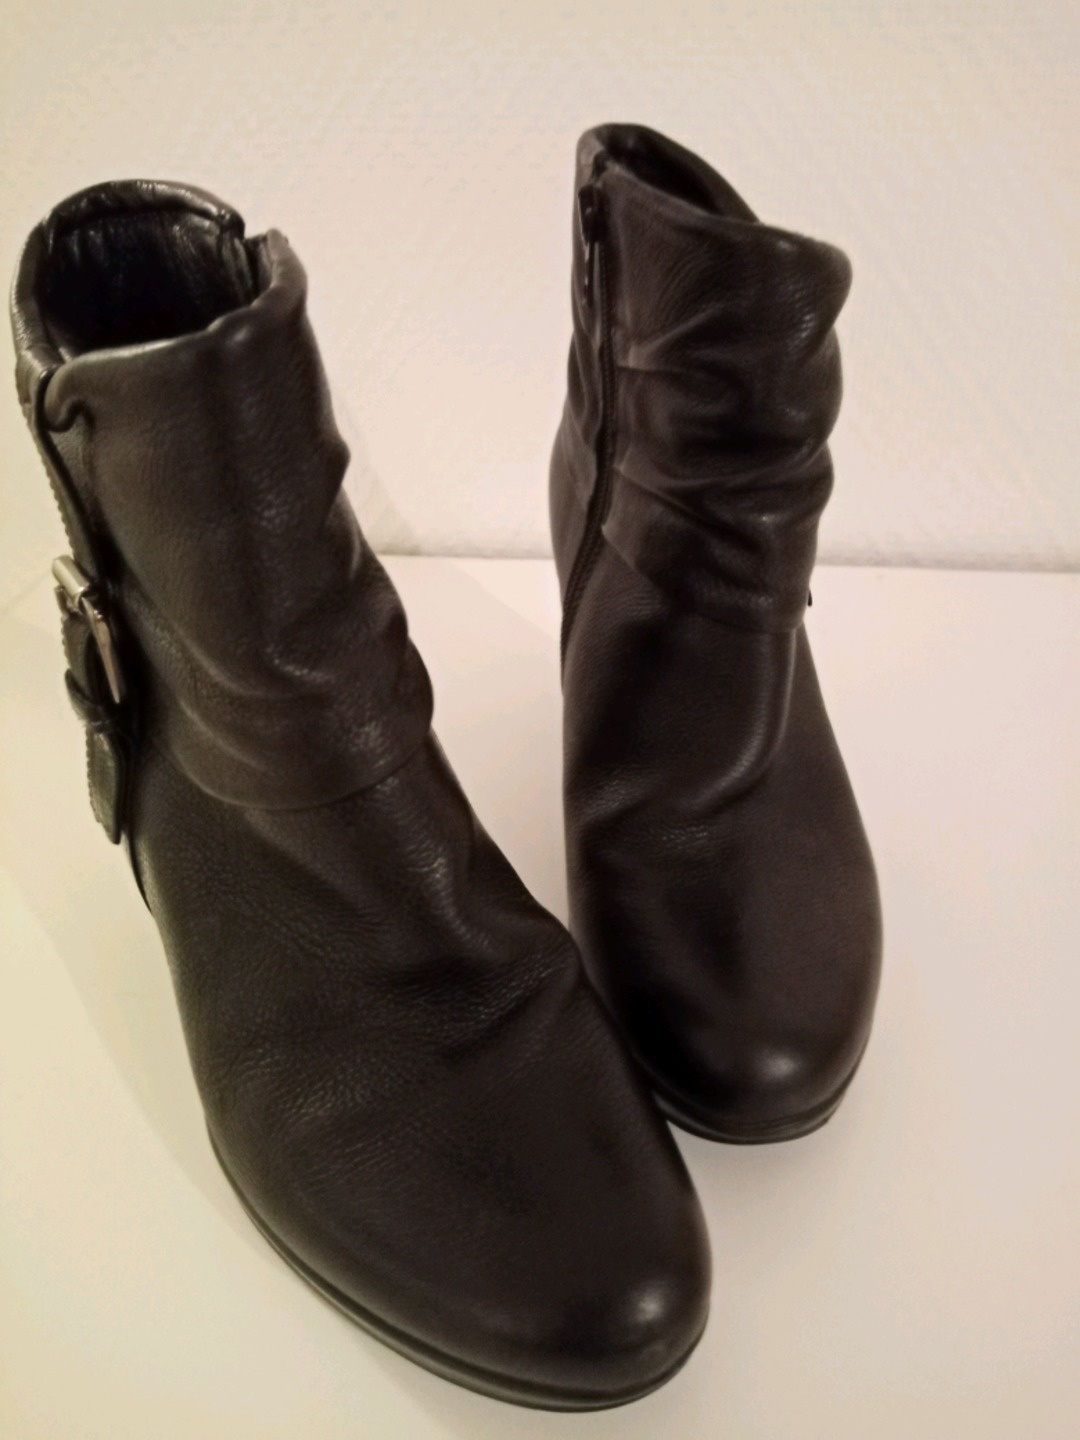 Women's boots - VERA PELLE photo 2